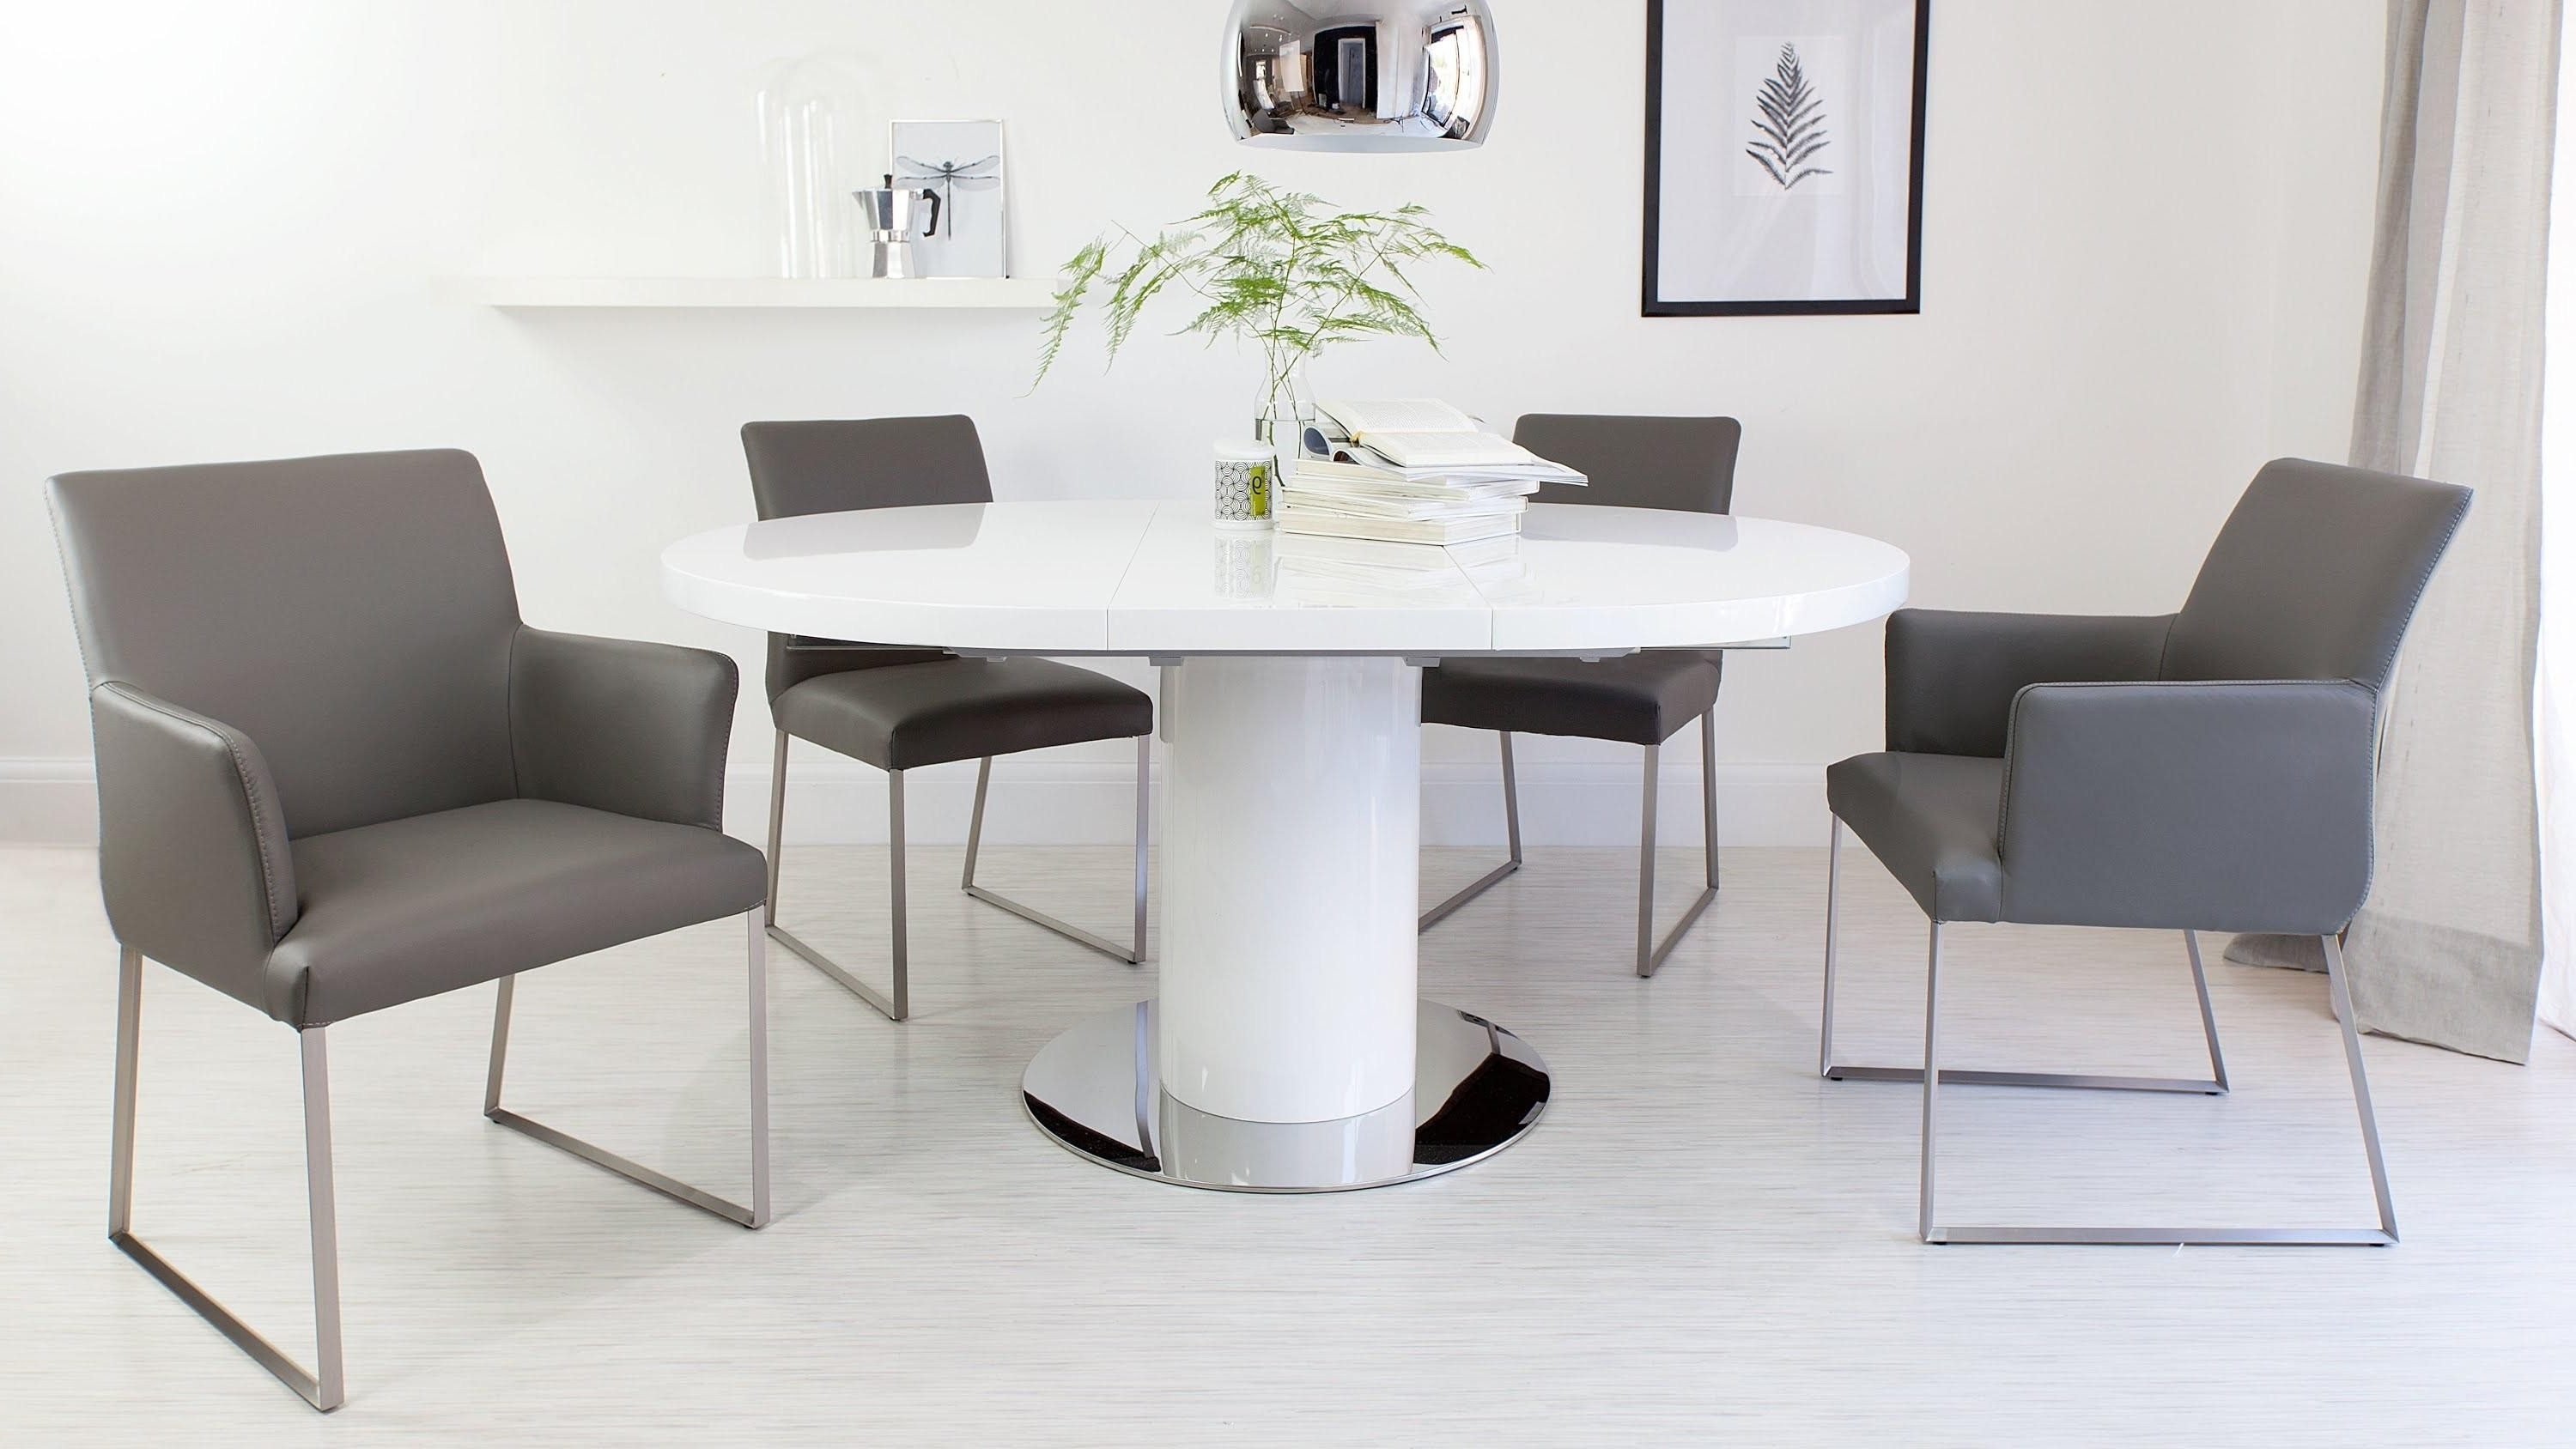 Round High Gloss Dining Tables For Latest White High Gloss Extending Dining Table Unique High Gloss Round (View 17 of 25)